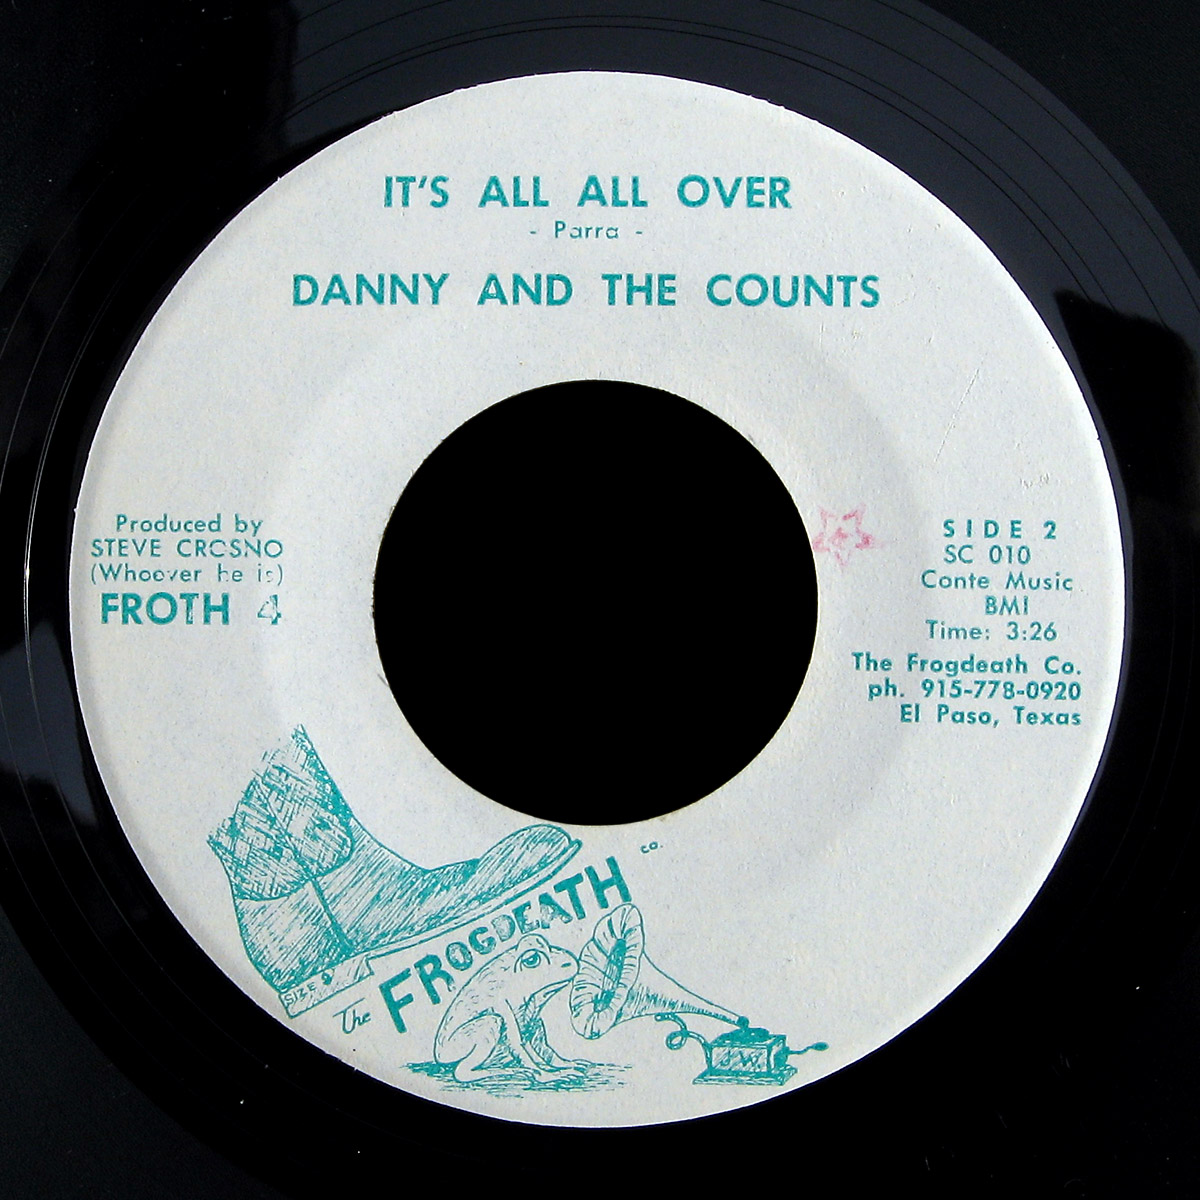 Danny and the Counts Frogdeath 45 It's All Over